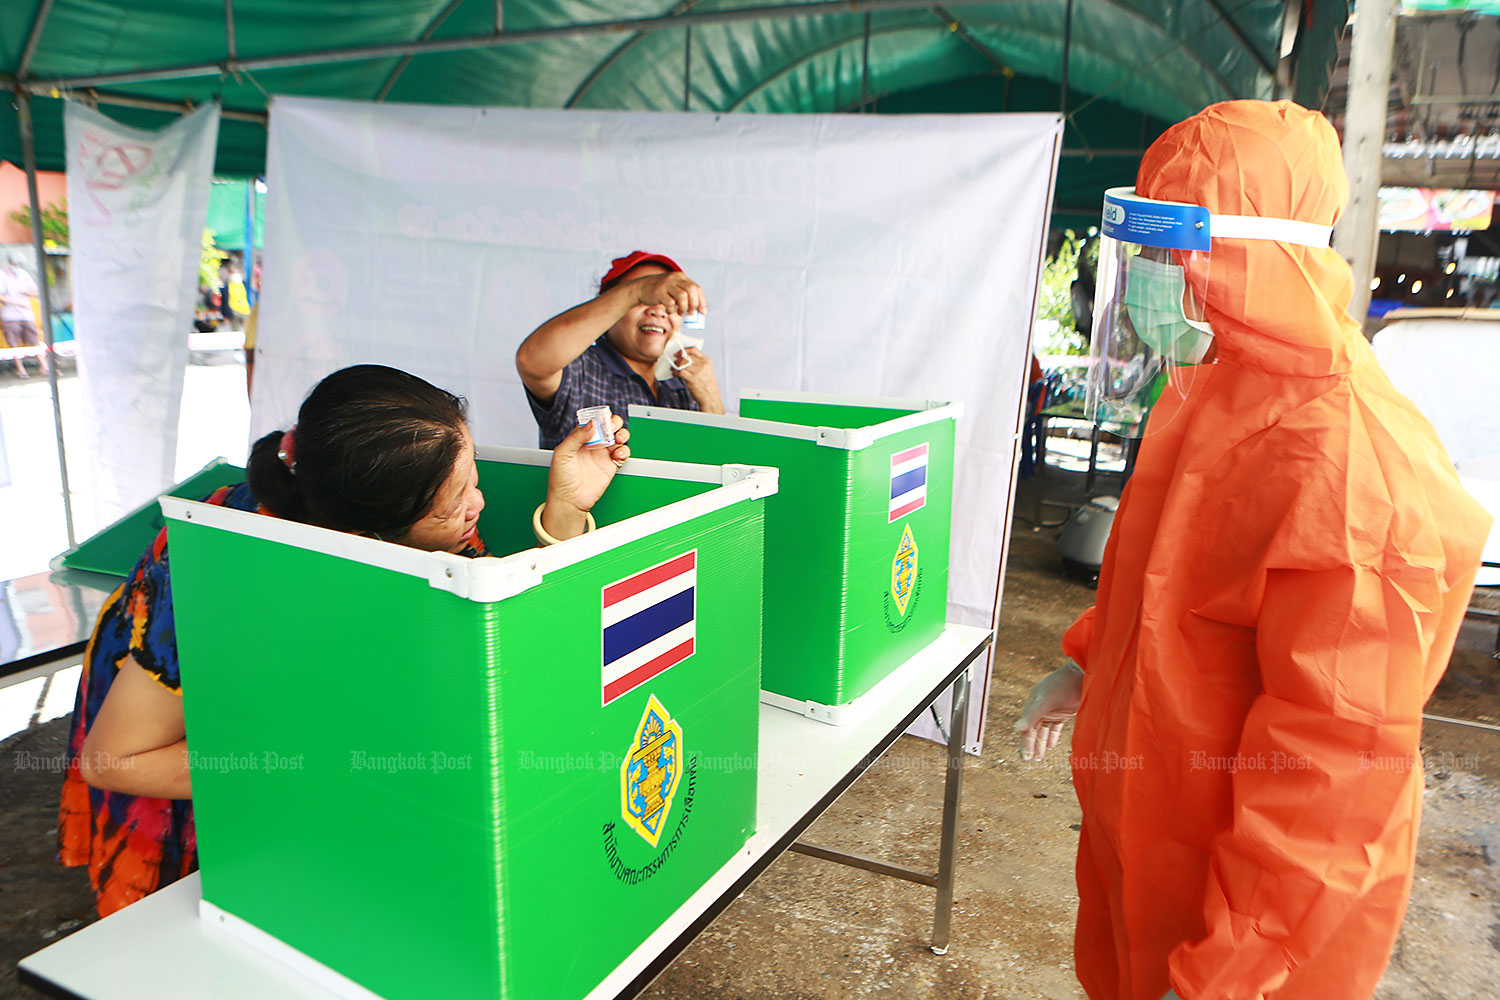 Will this do?: Women hold up saliva samples at improvised cubicles as a medical worker in full protective gear waits to collect them. The samples were for Covid-19 testing on people in at-risk groups in Yannawa district. (Photo: Somchai Poomlard)